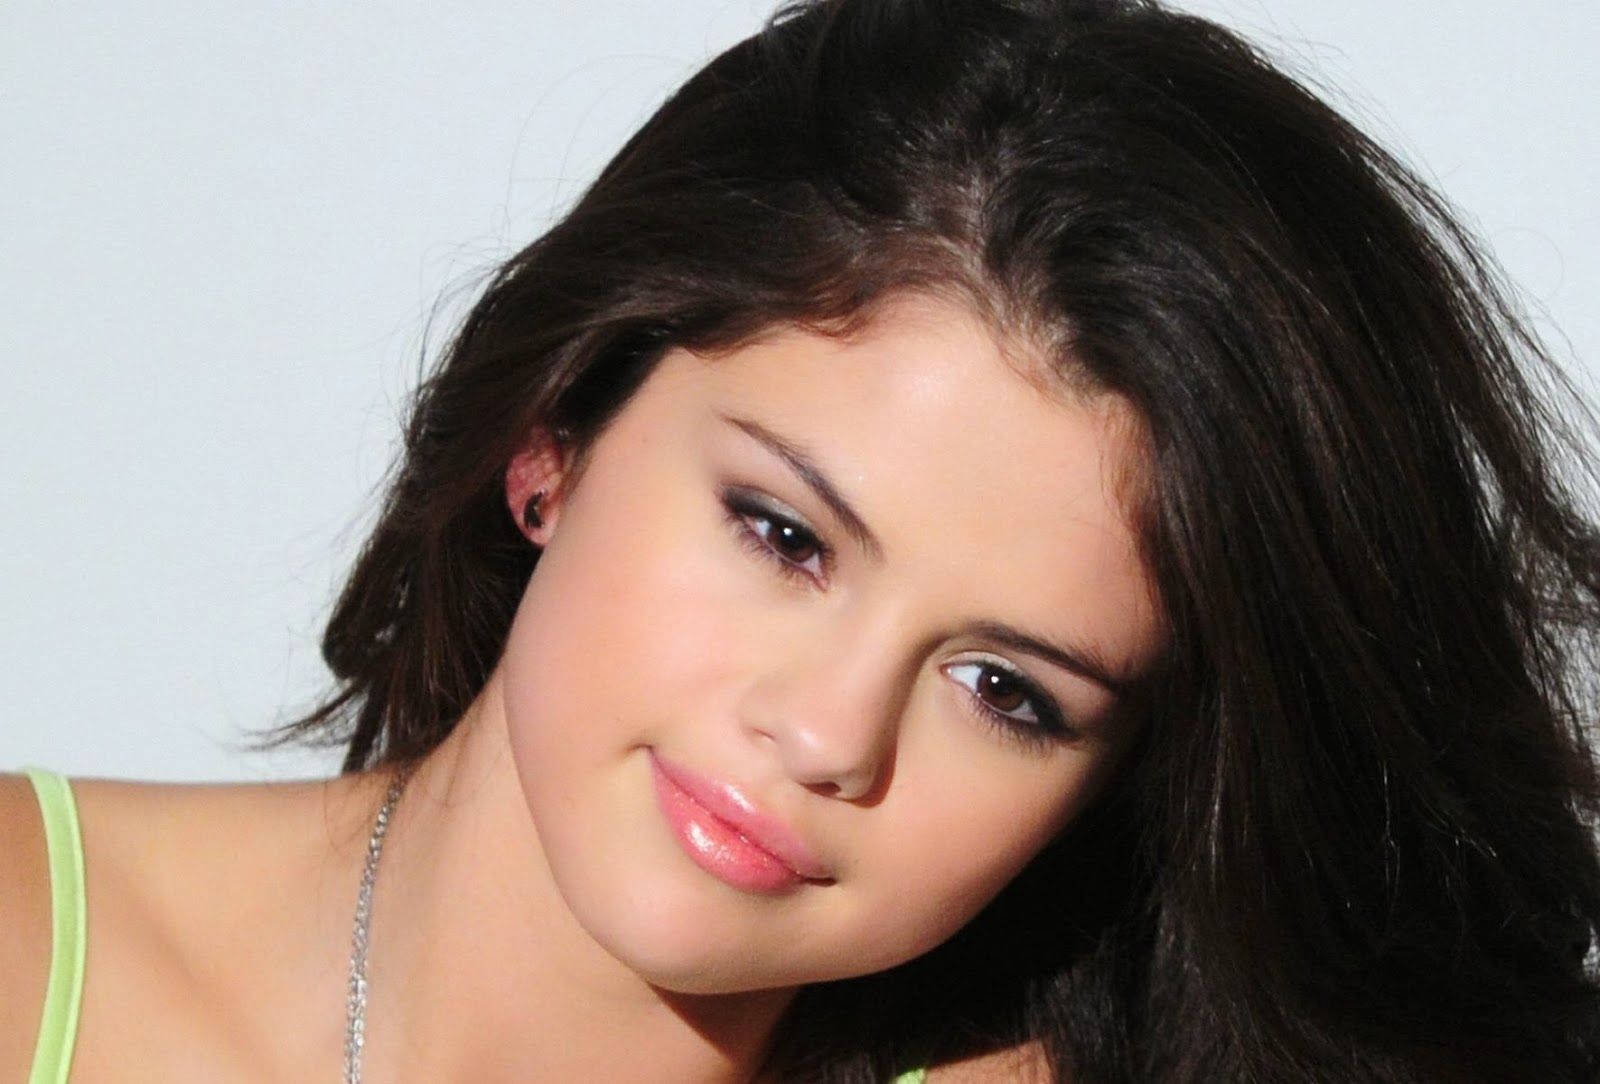 stars wallpaper: selena gomez hd wallpapers free download